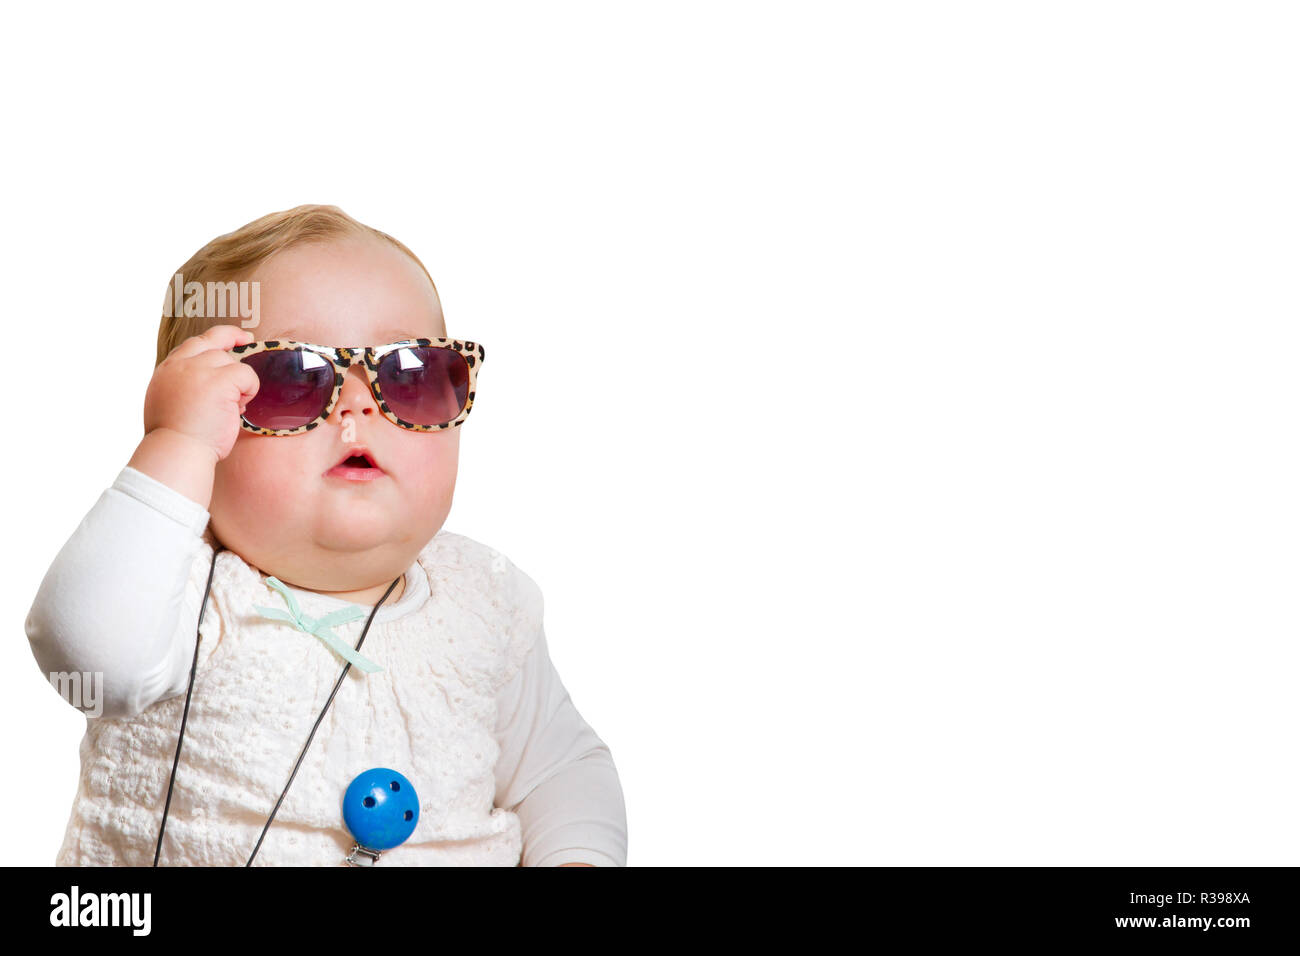 baby with sunglasses,released on a white background Stock Photo